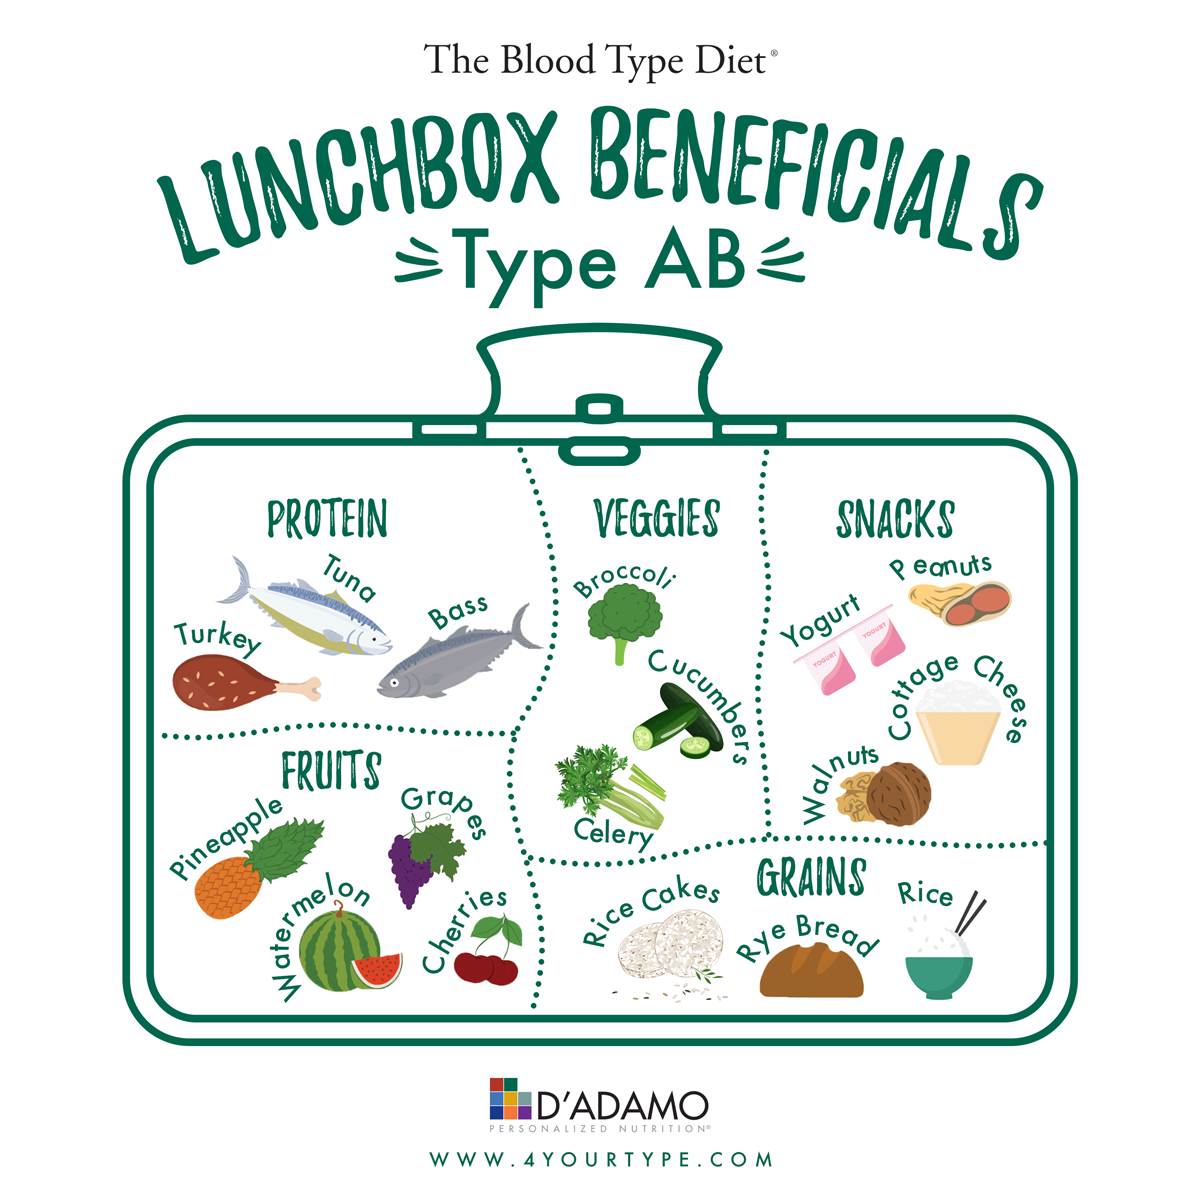 Lunchbox Beneficials Blood Type AB